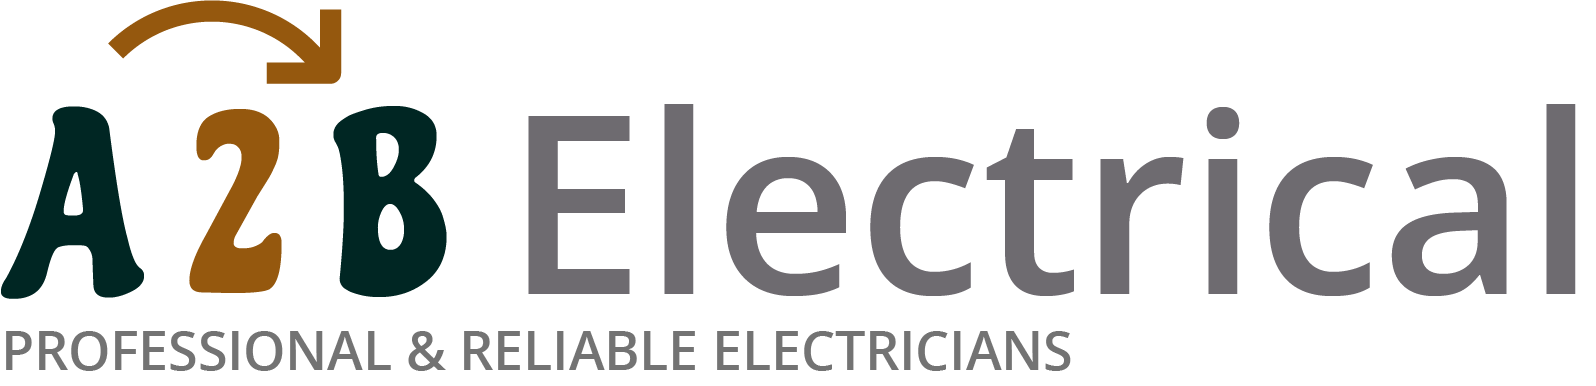 If you have electrical wiring problems in Tottenham, we can provide an electrician to have a look for you.